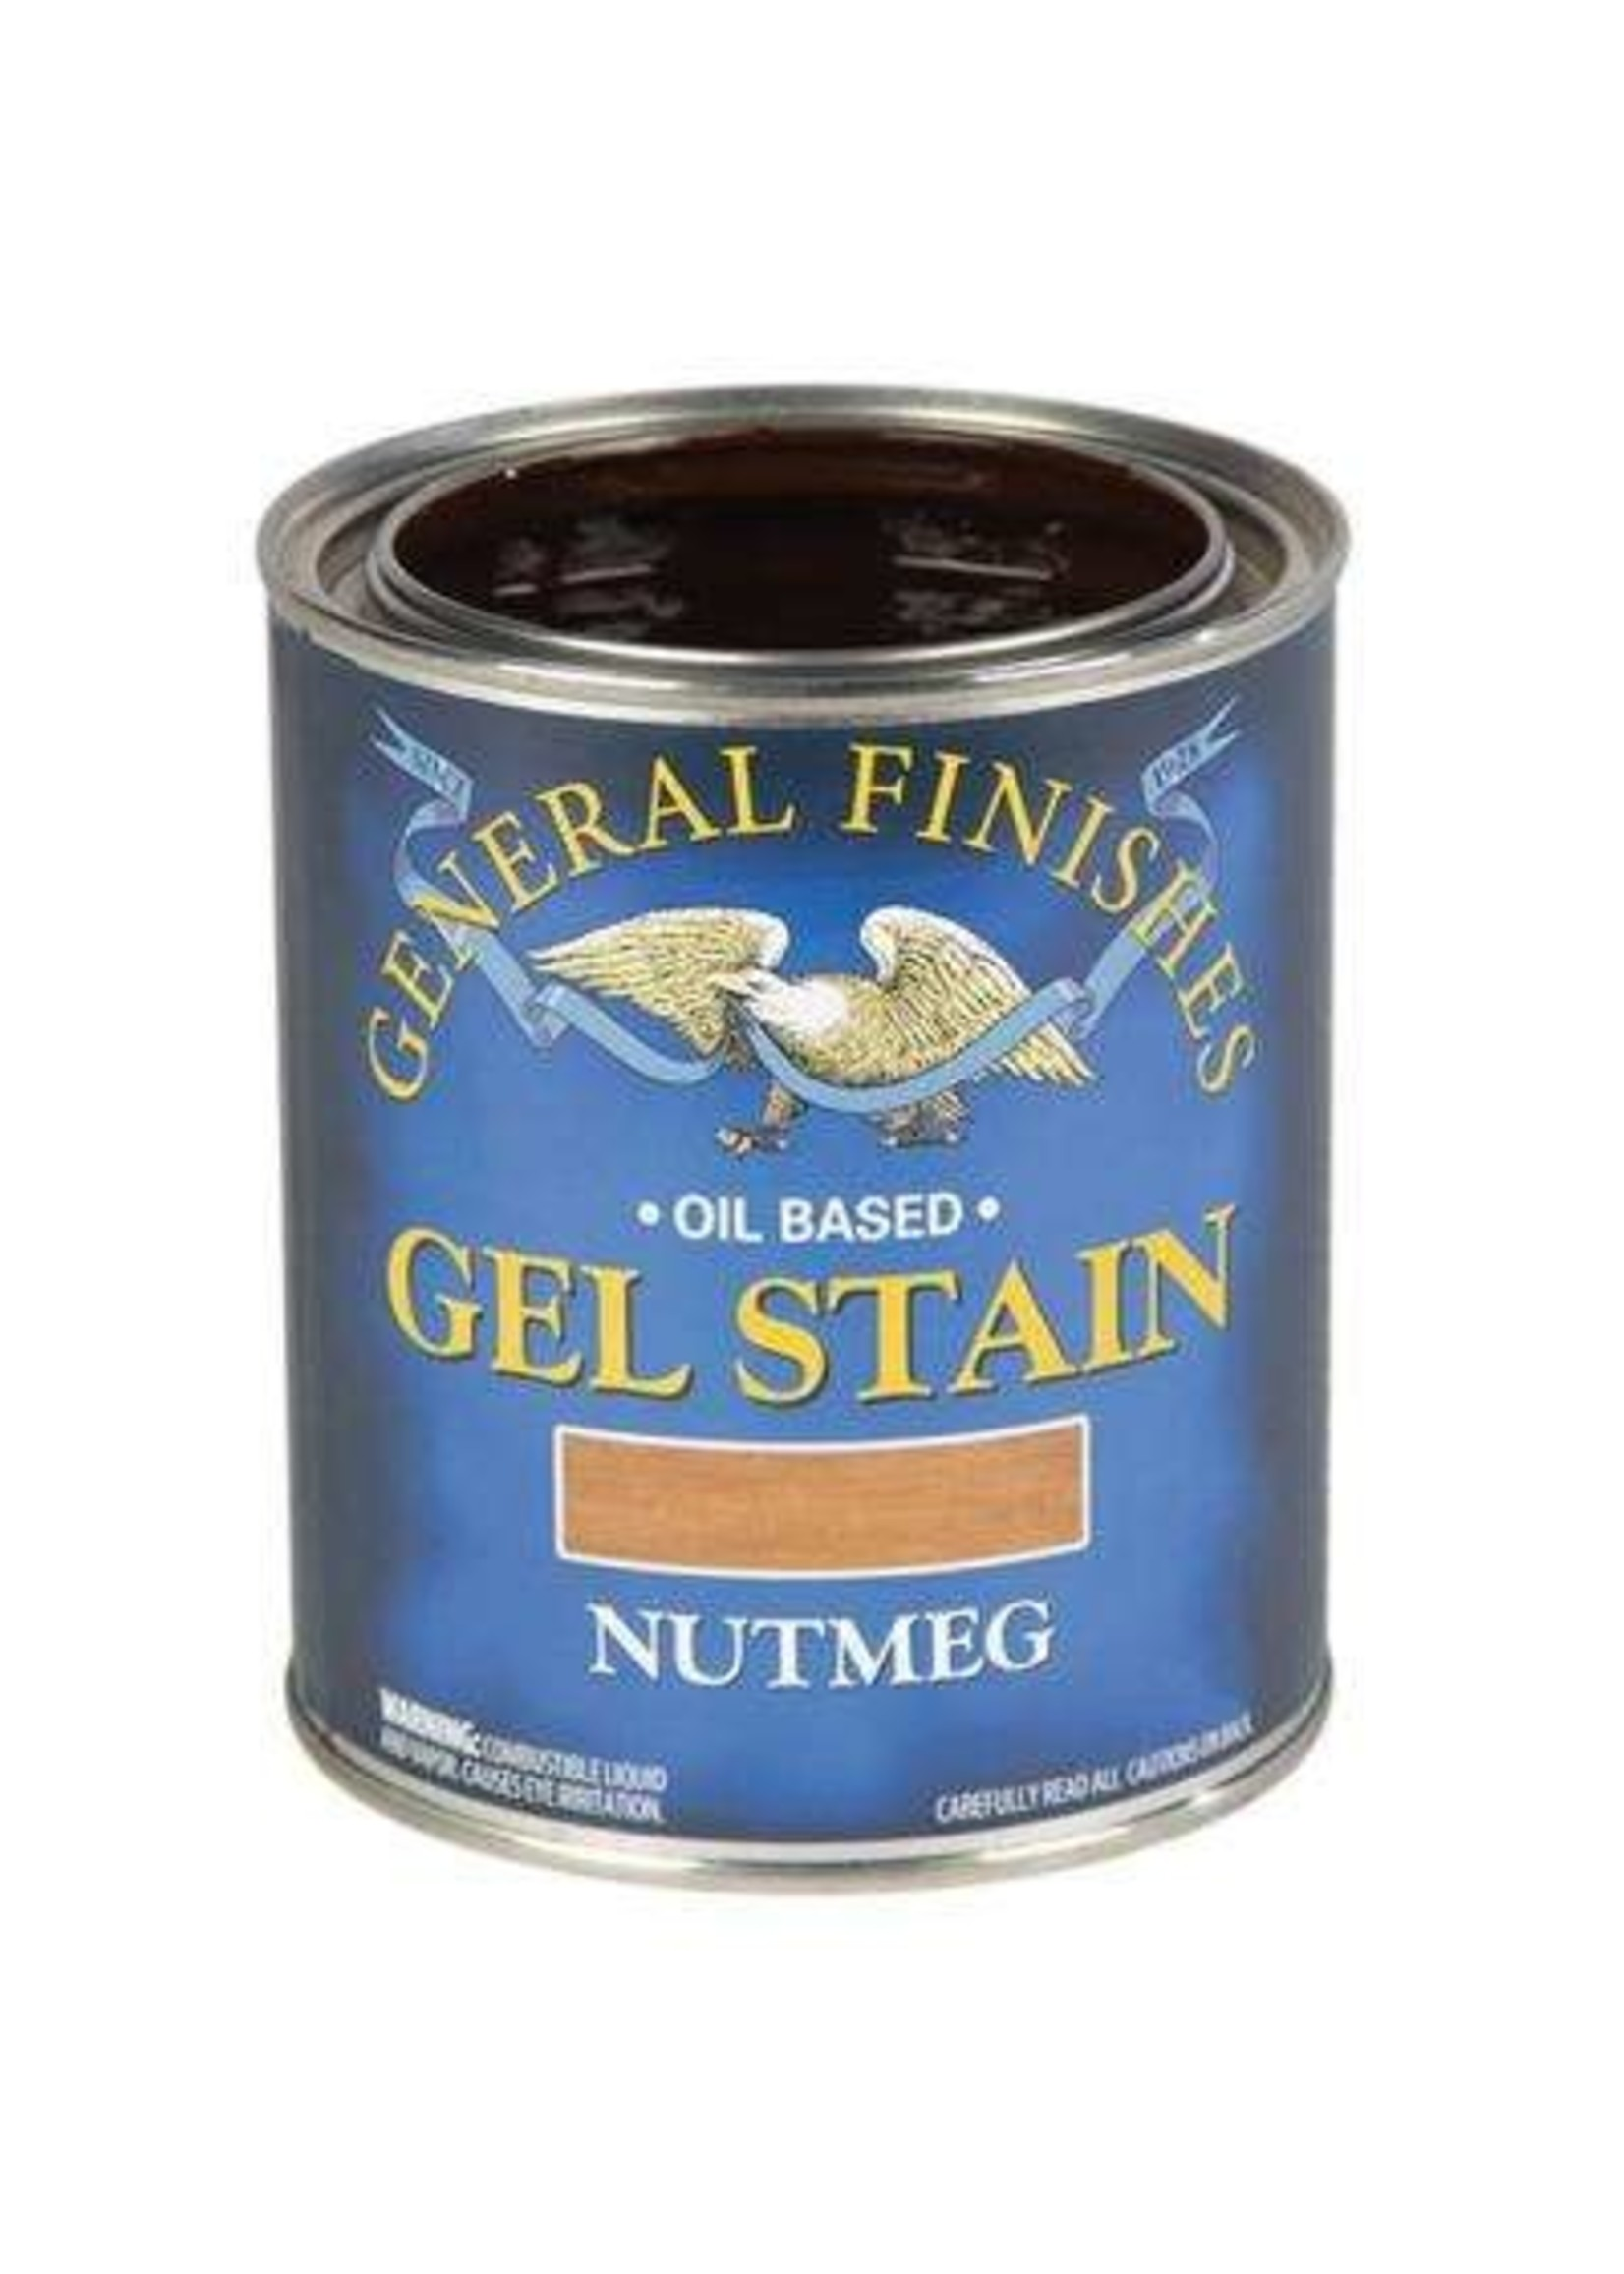 General Finishes Nutmeg  General Finishes Gel Stain